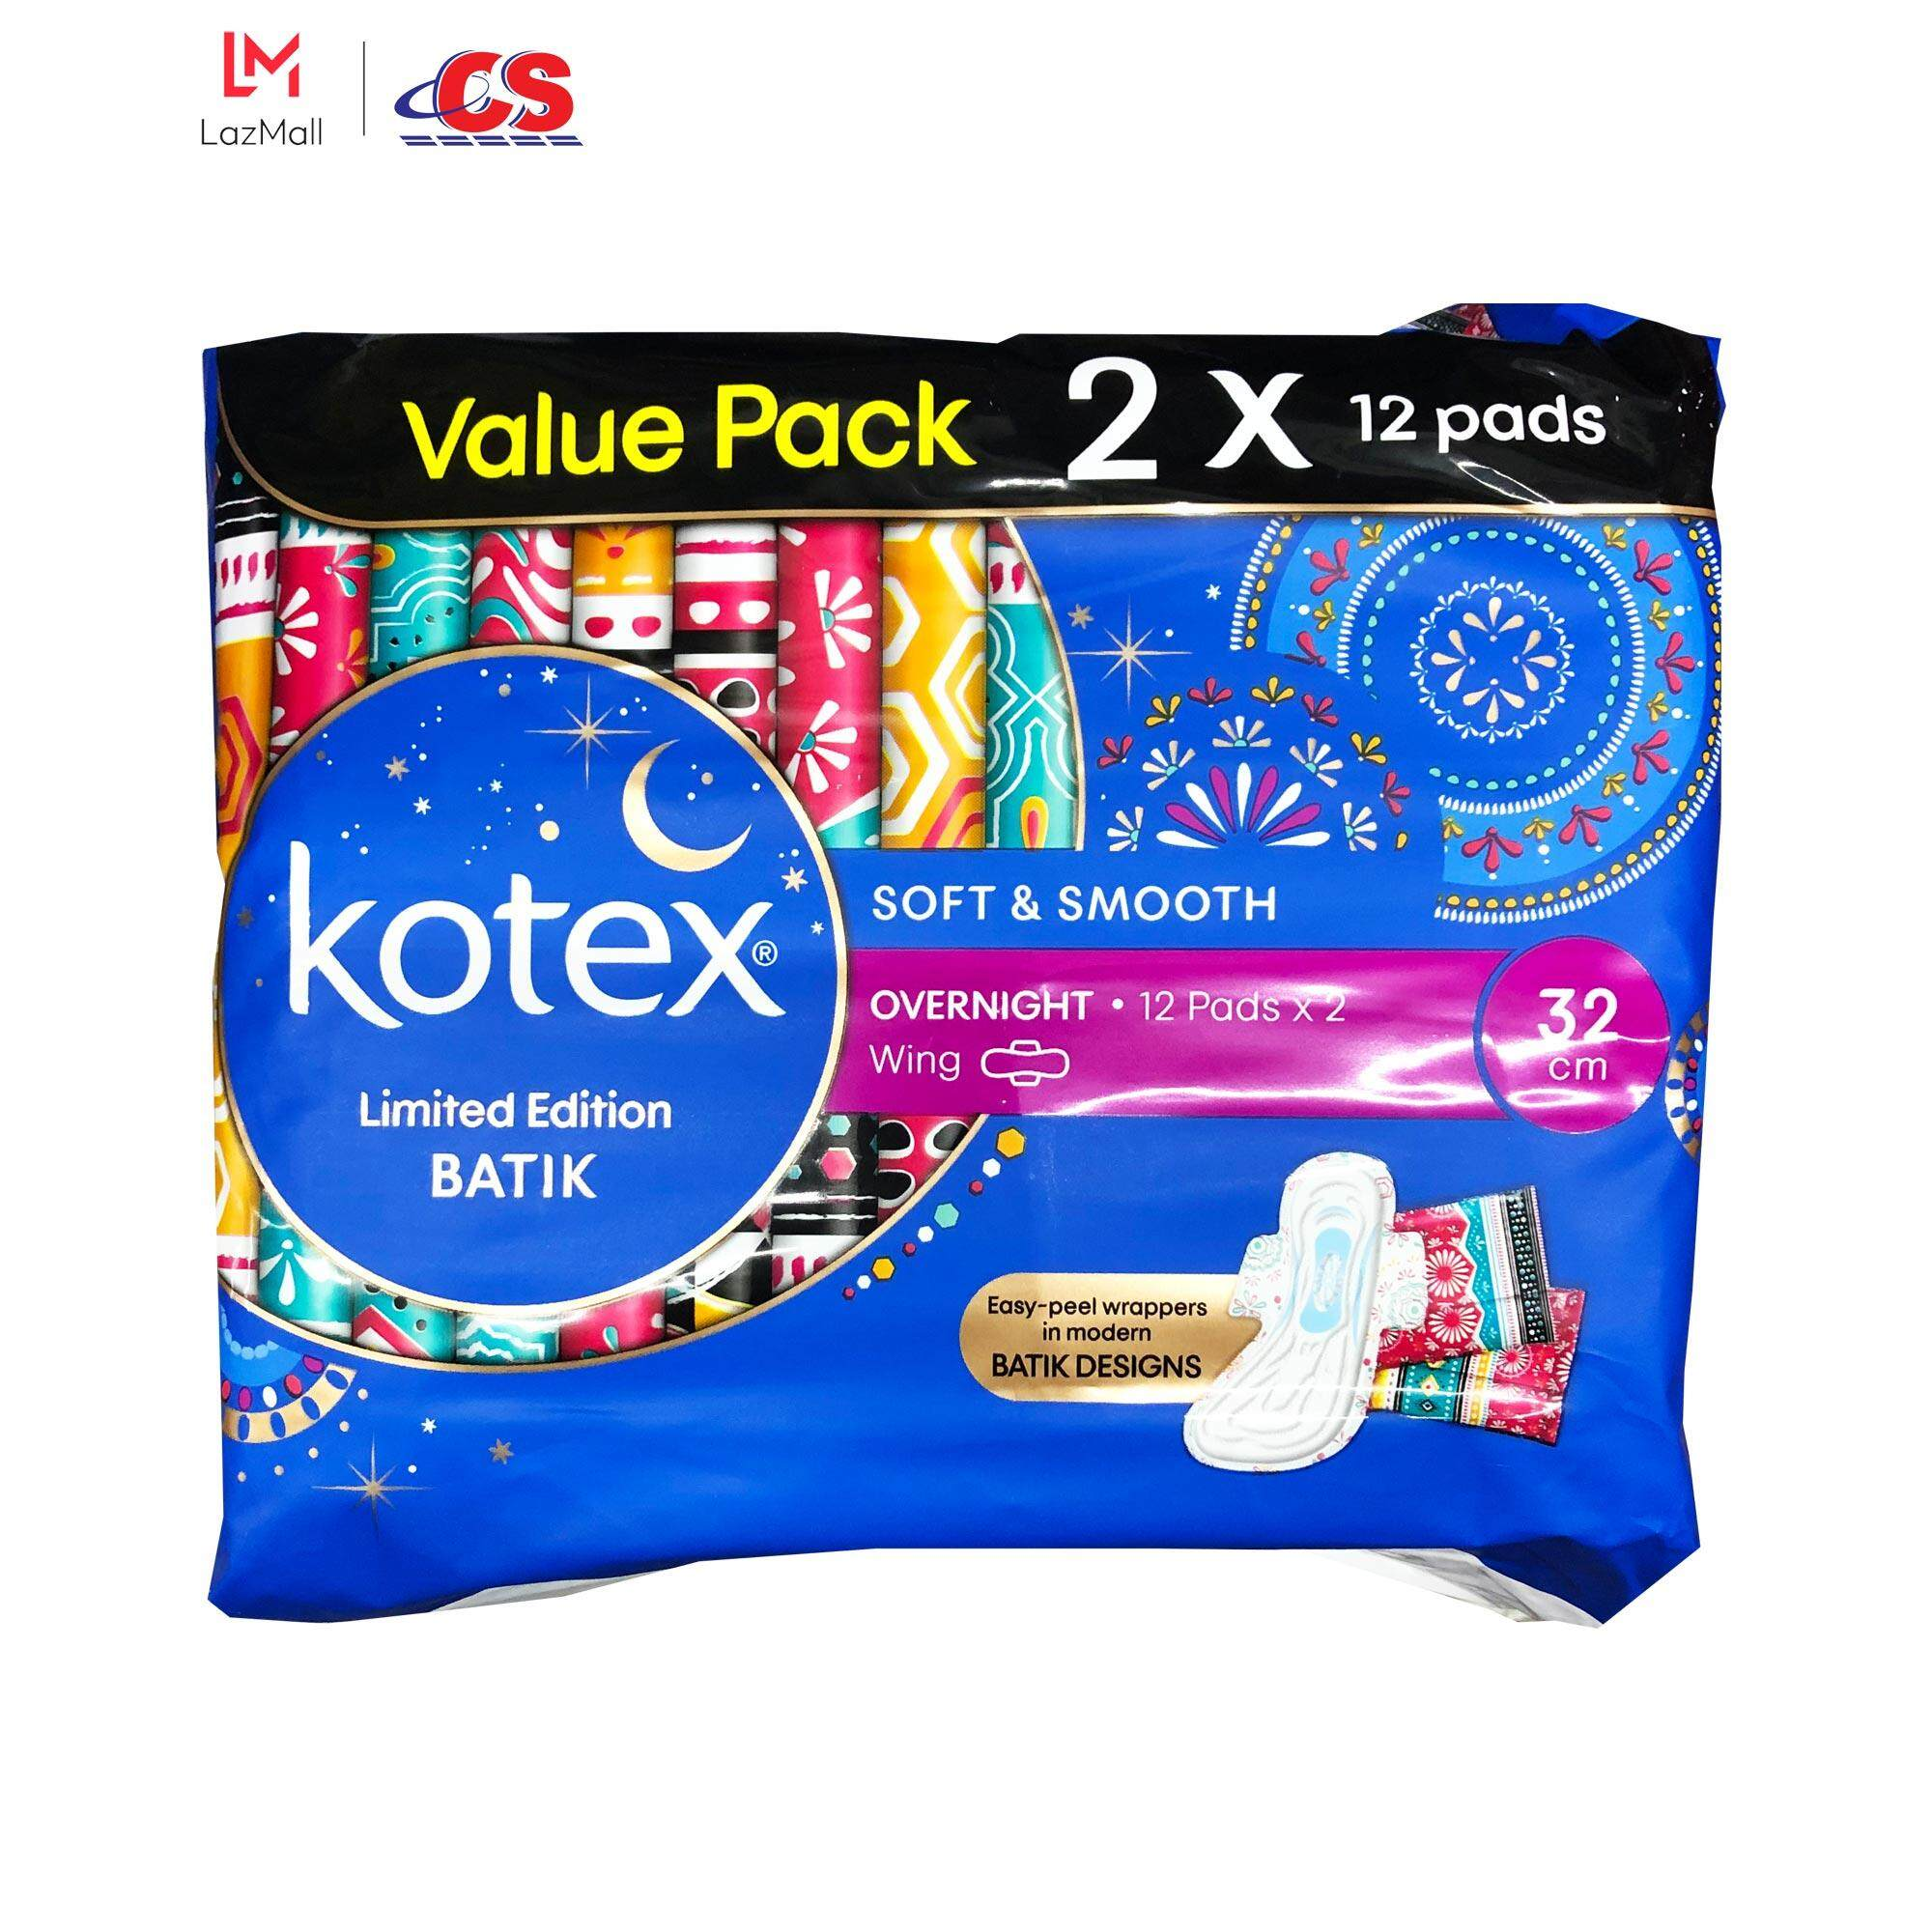 KOTEX Soft and Smooth Overnight Wing 32cm 2x12s